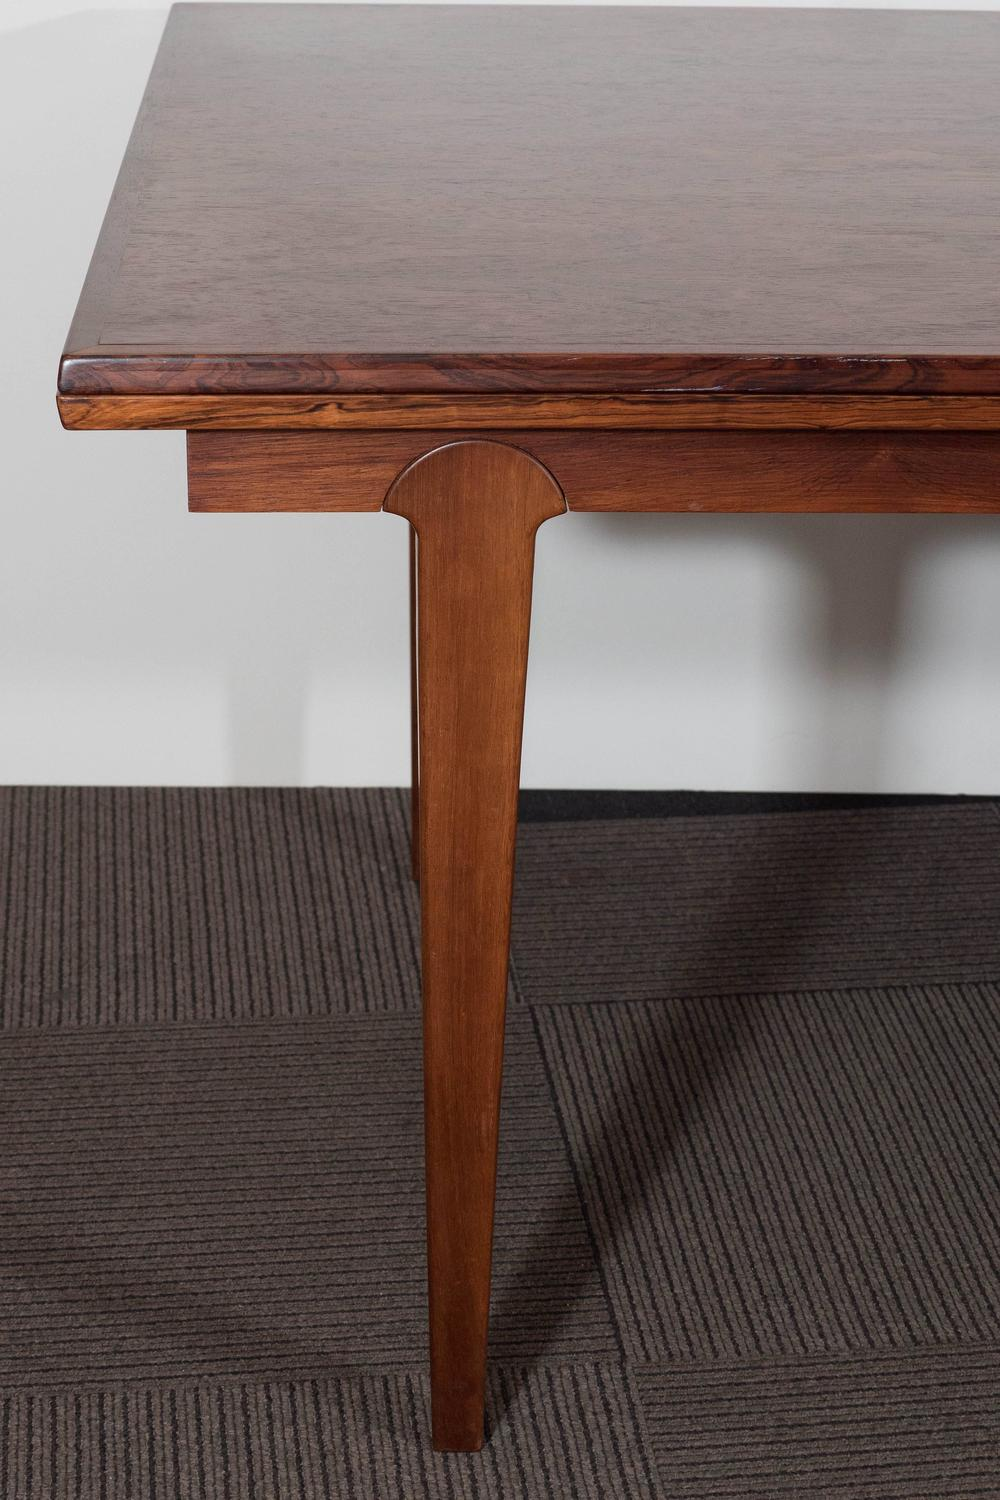 Scandinavian Midcentury Dining Table With Extension Leaves At 1stdibs